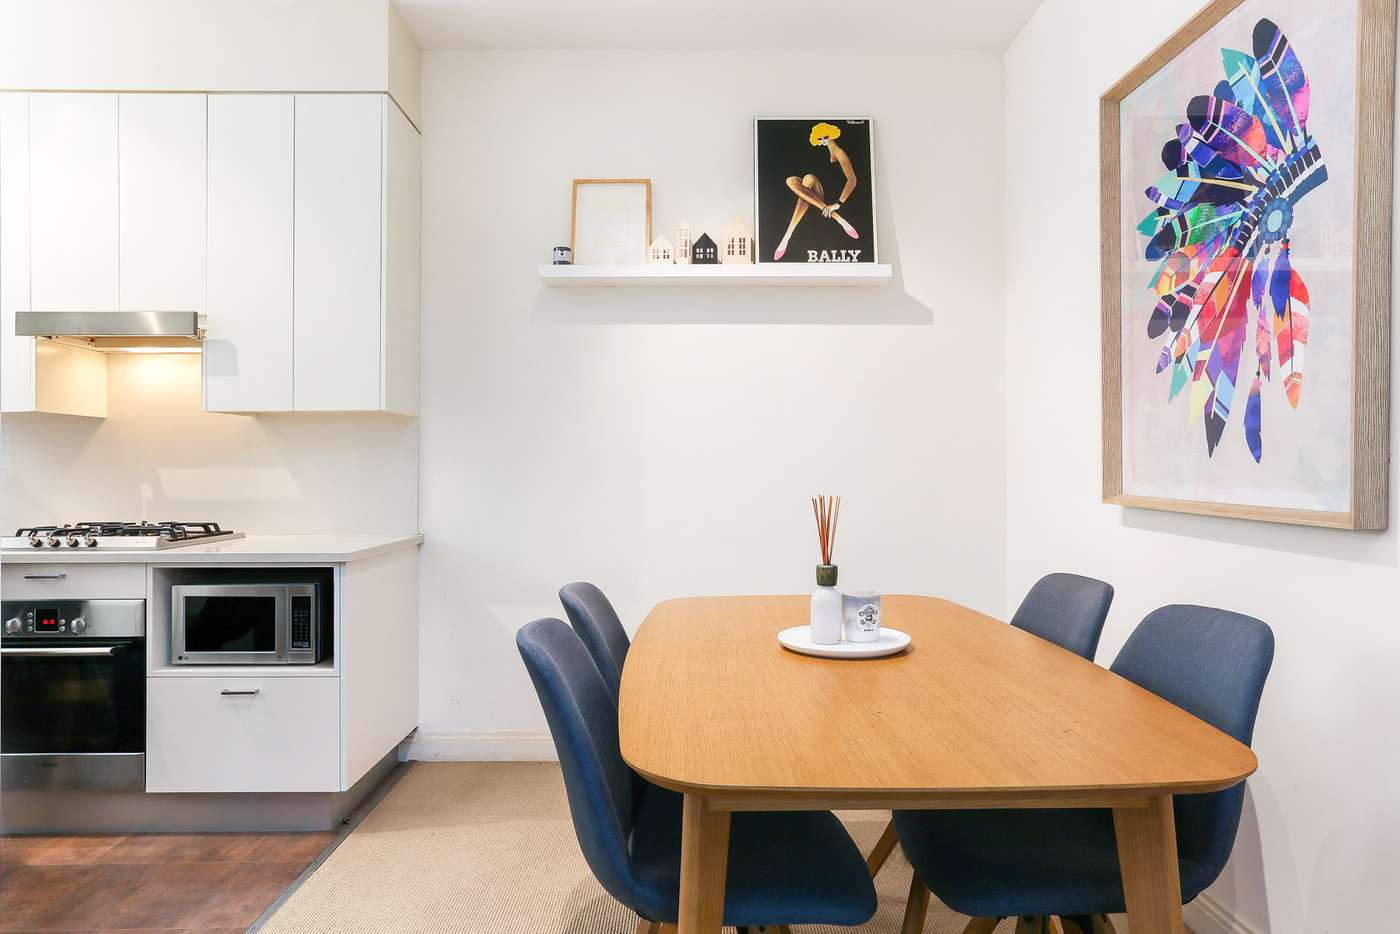 Main view of Homely apartment listing, 8/35 Nelson Street, Woollahra NSW 2025